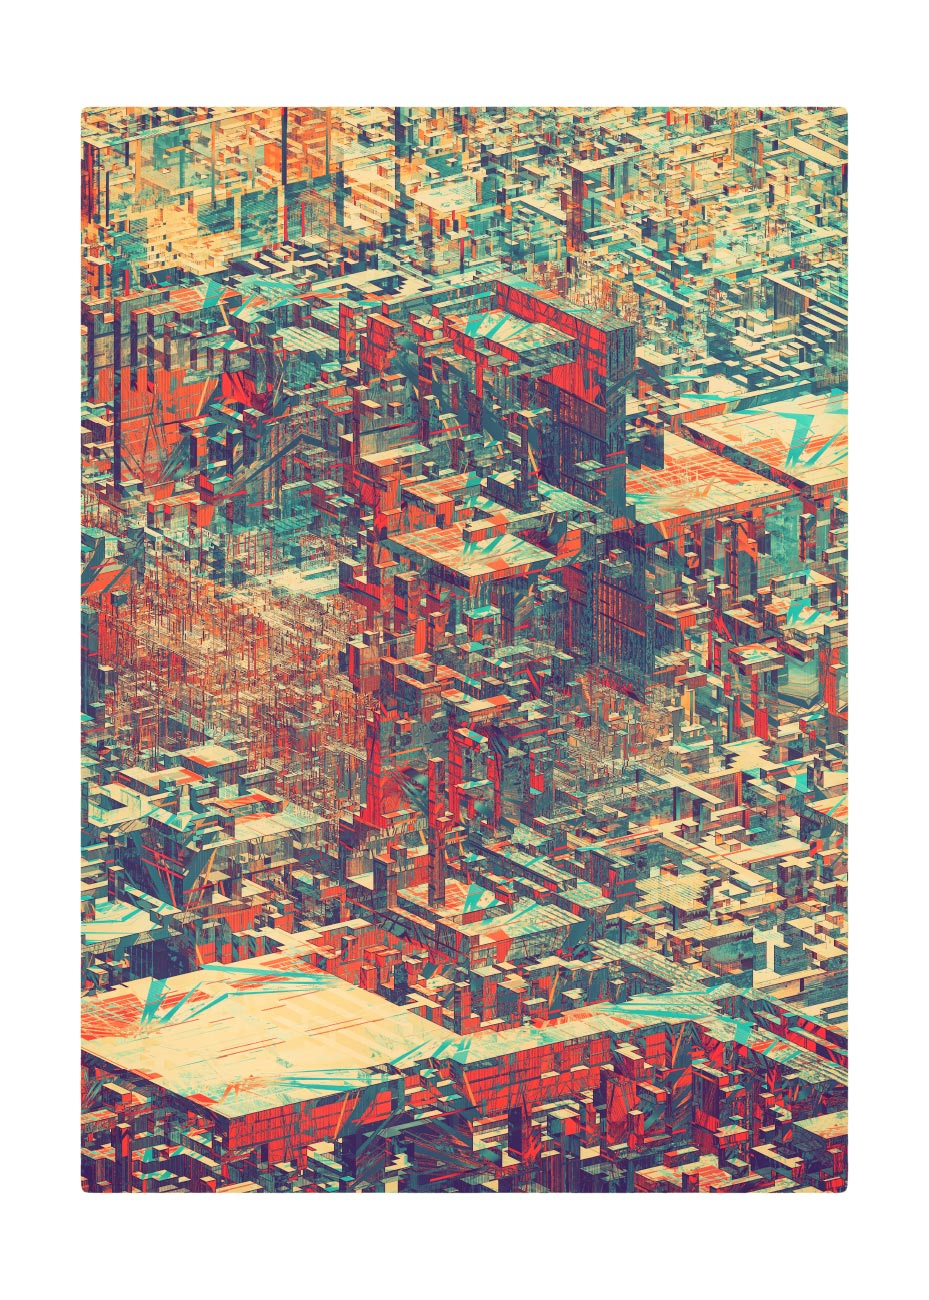 PIXEL CITY II 02